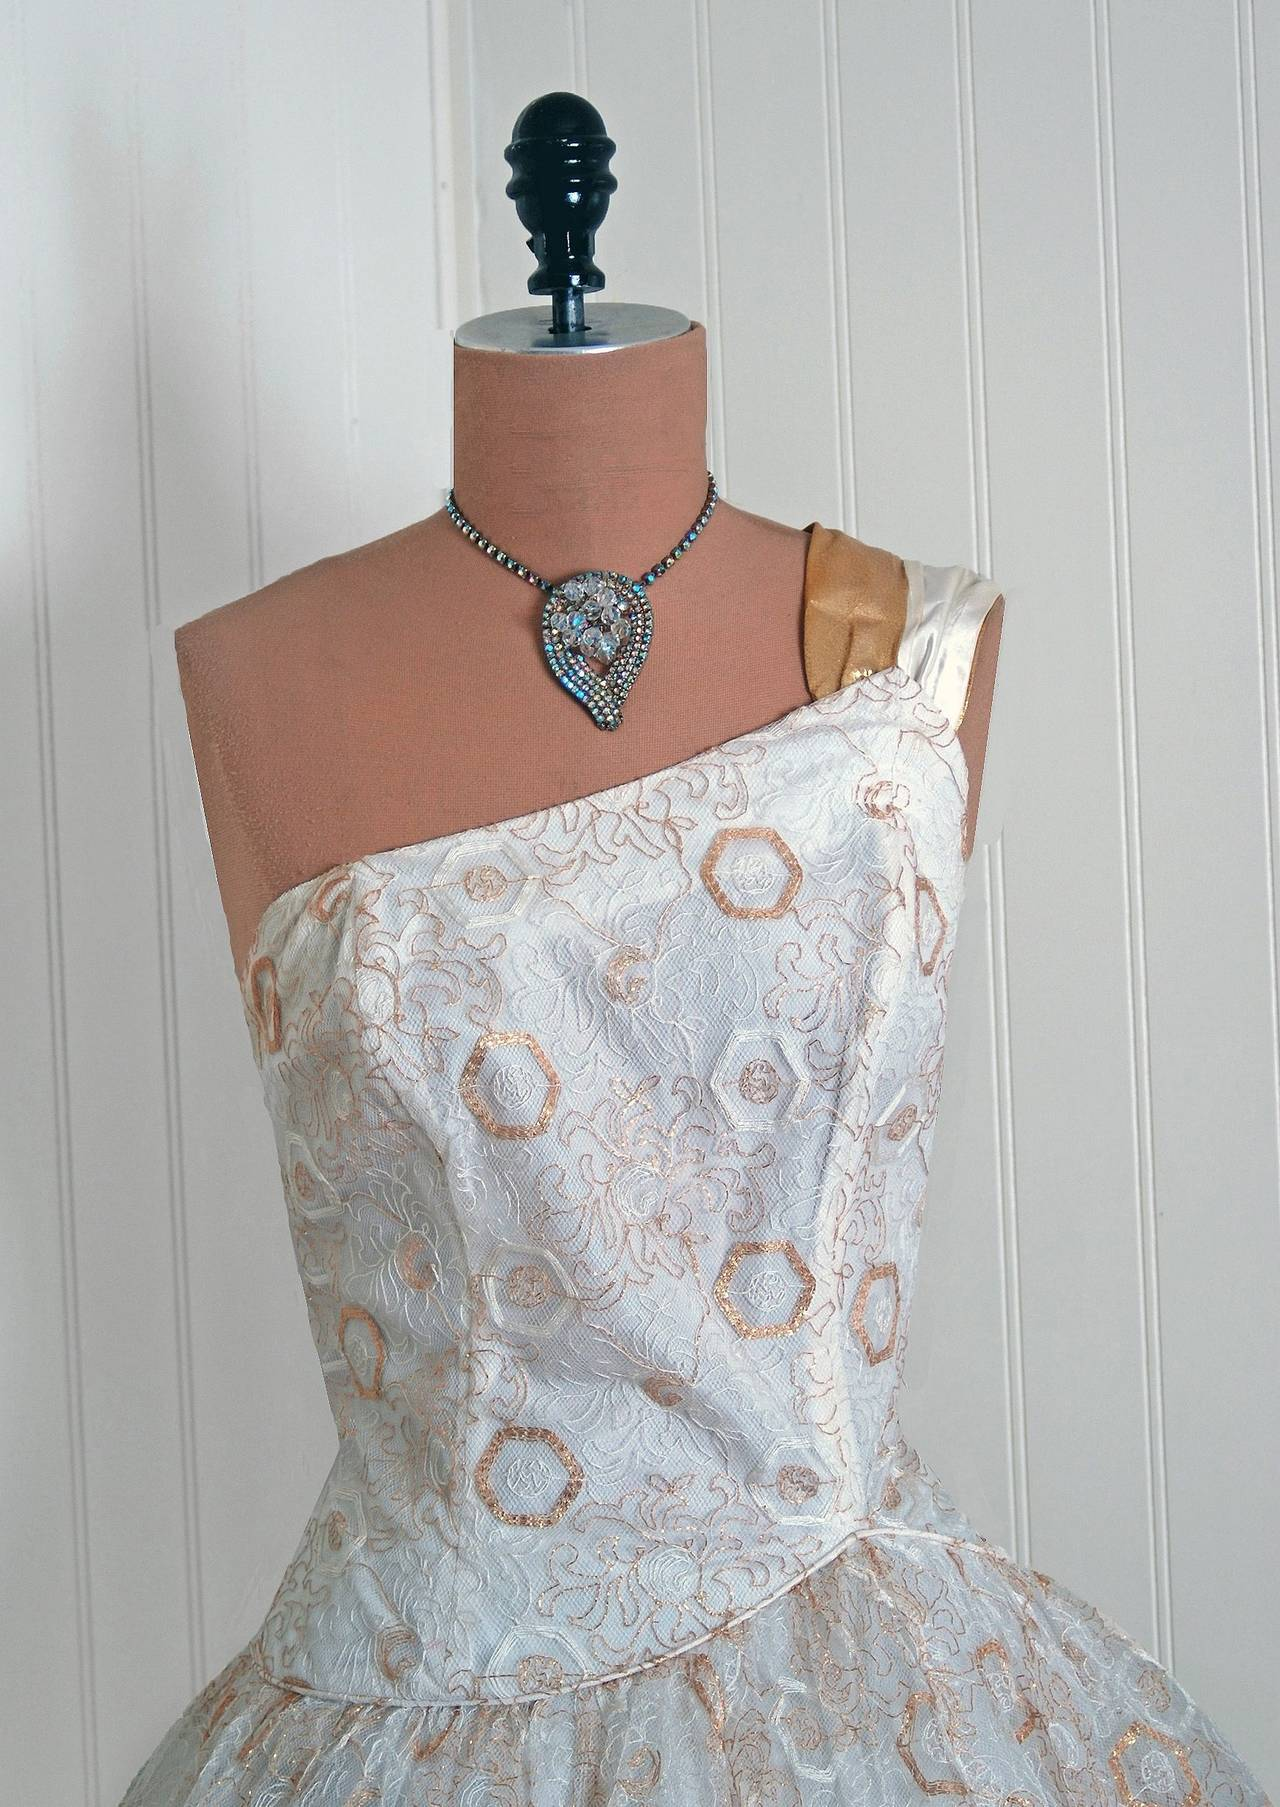 """With its metallic-gold embroidered sparkle and flawless """"new look"""" silhouette, this Emma Domb designer party dress has the casual elegance the 1950's were known for. The artisanship alone is unbelievable. A stunning atomic deco pattern embroidered"""